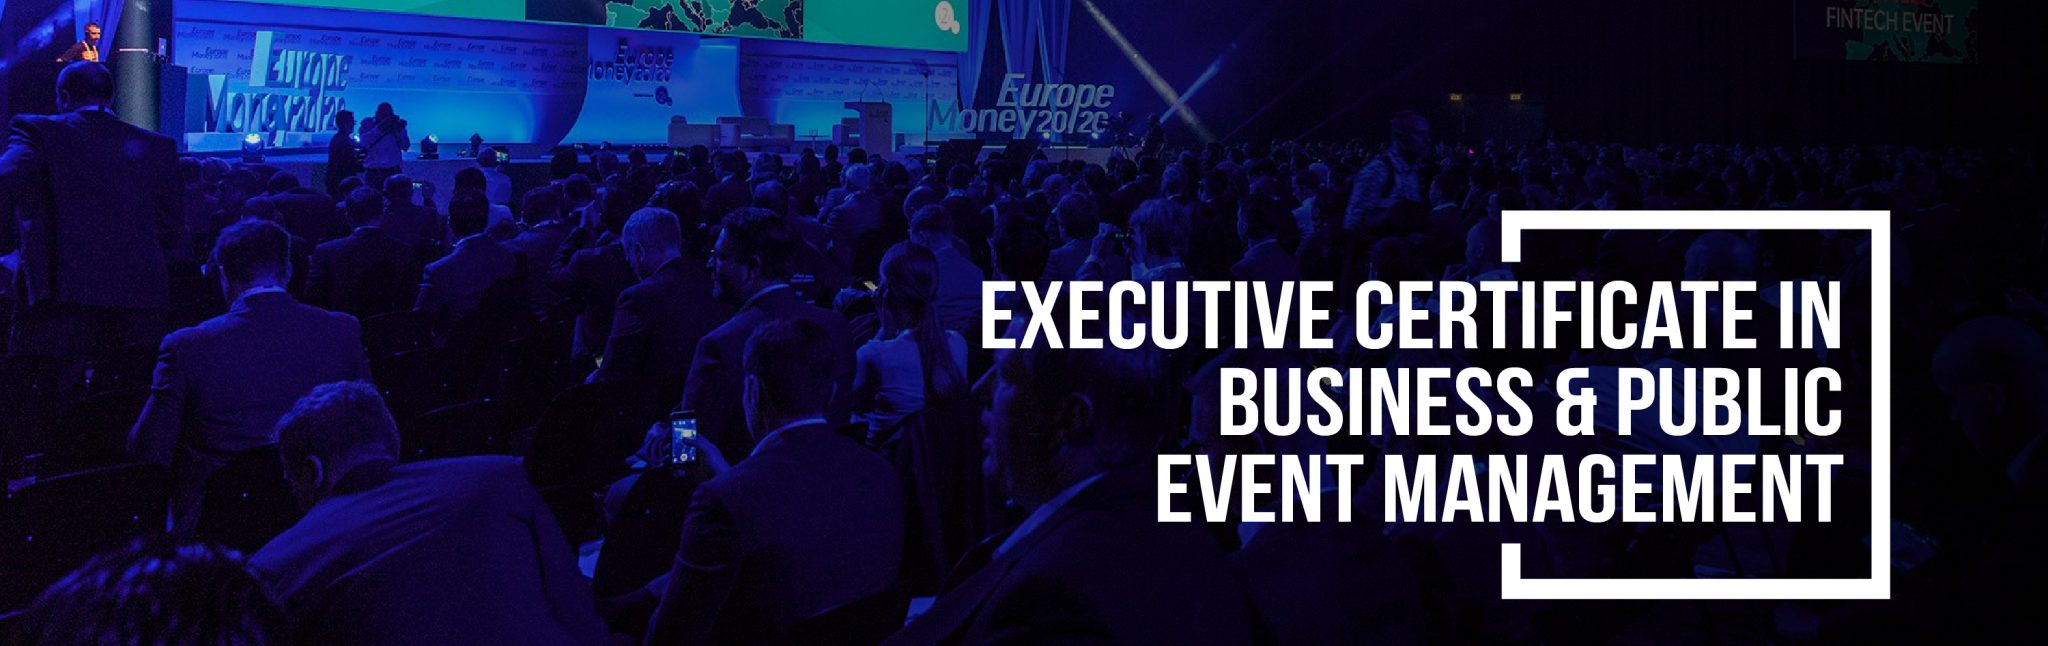 Executive Certificate In Business Public Event Management